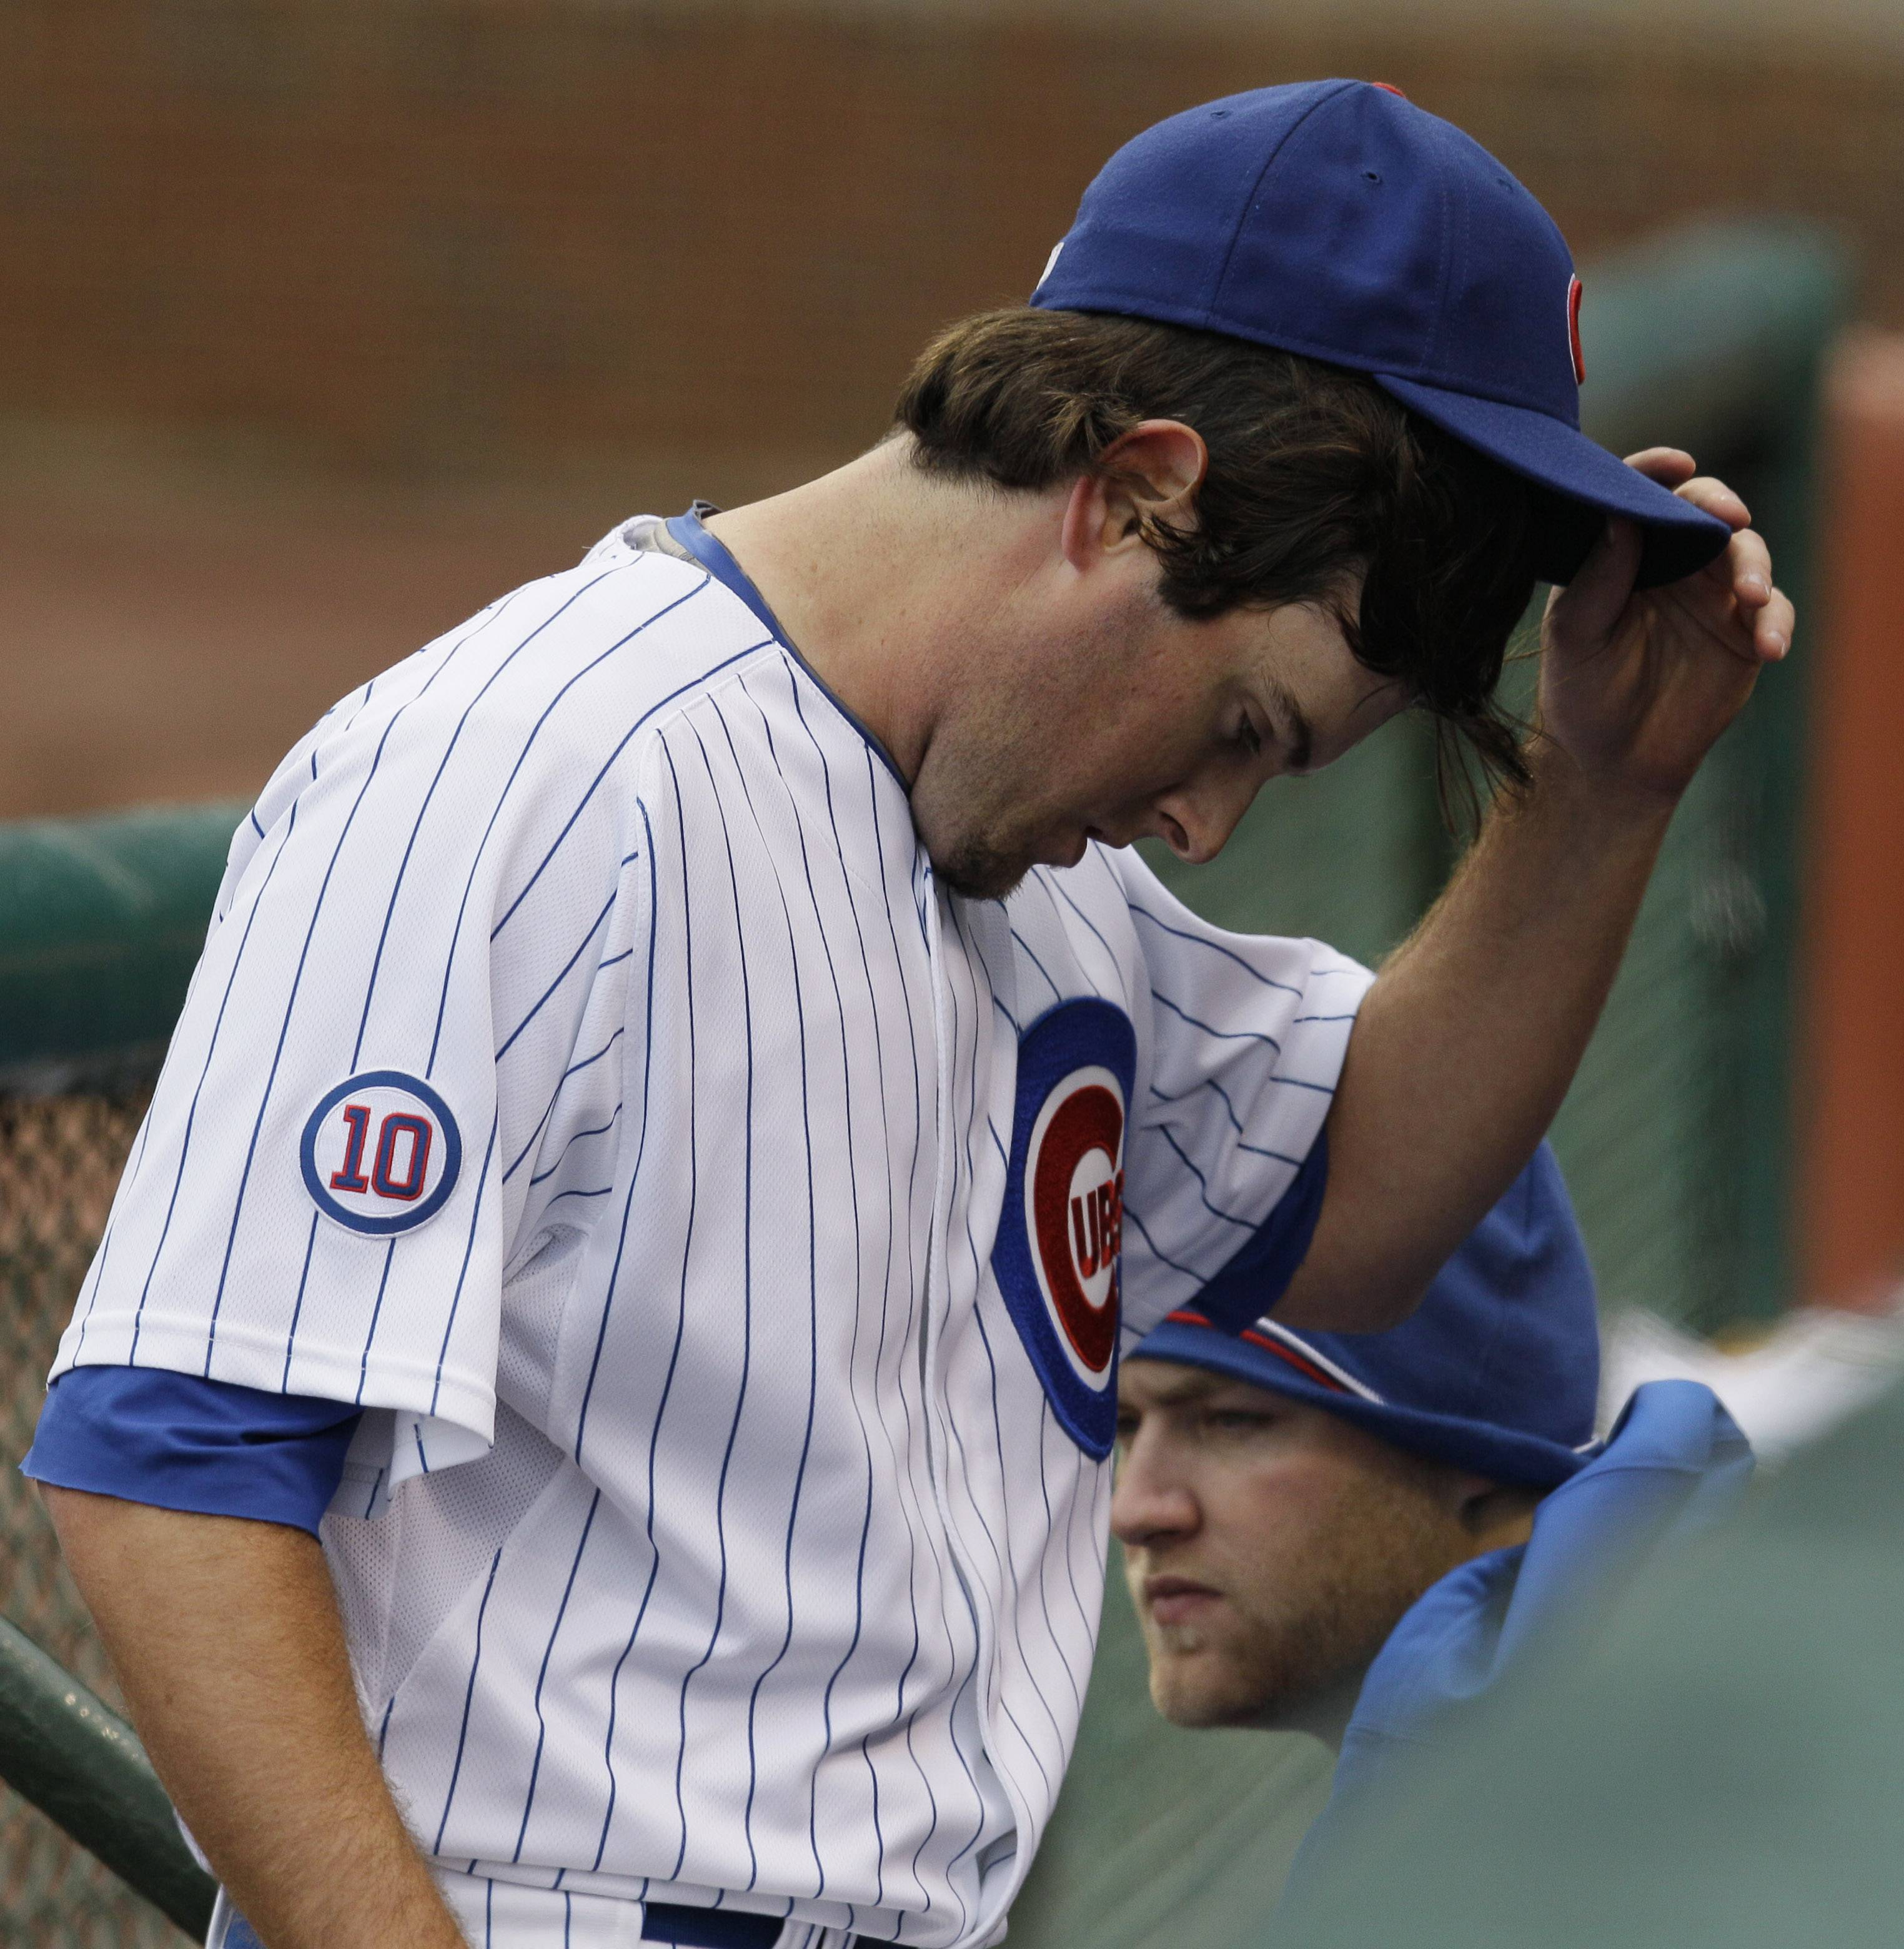 Casey Coleman reacts after he relieved by manager Mike Quade during the third inning of a baseball game against the Los Angeles Dodgers on Friday at Wrigley Field.